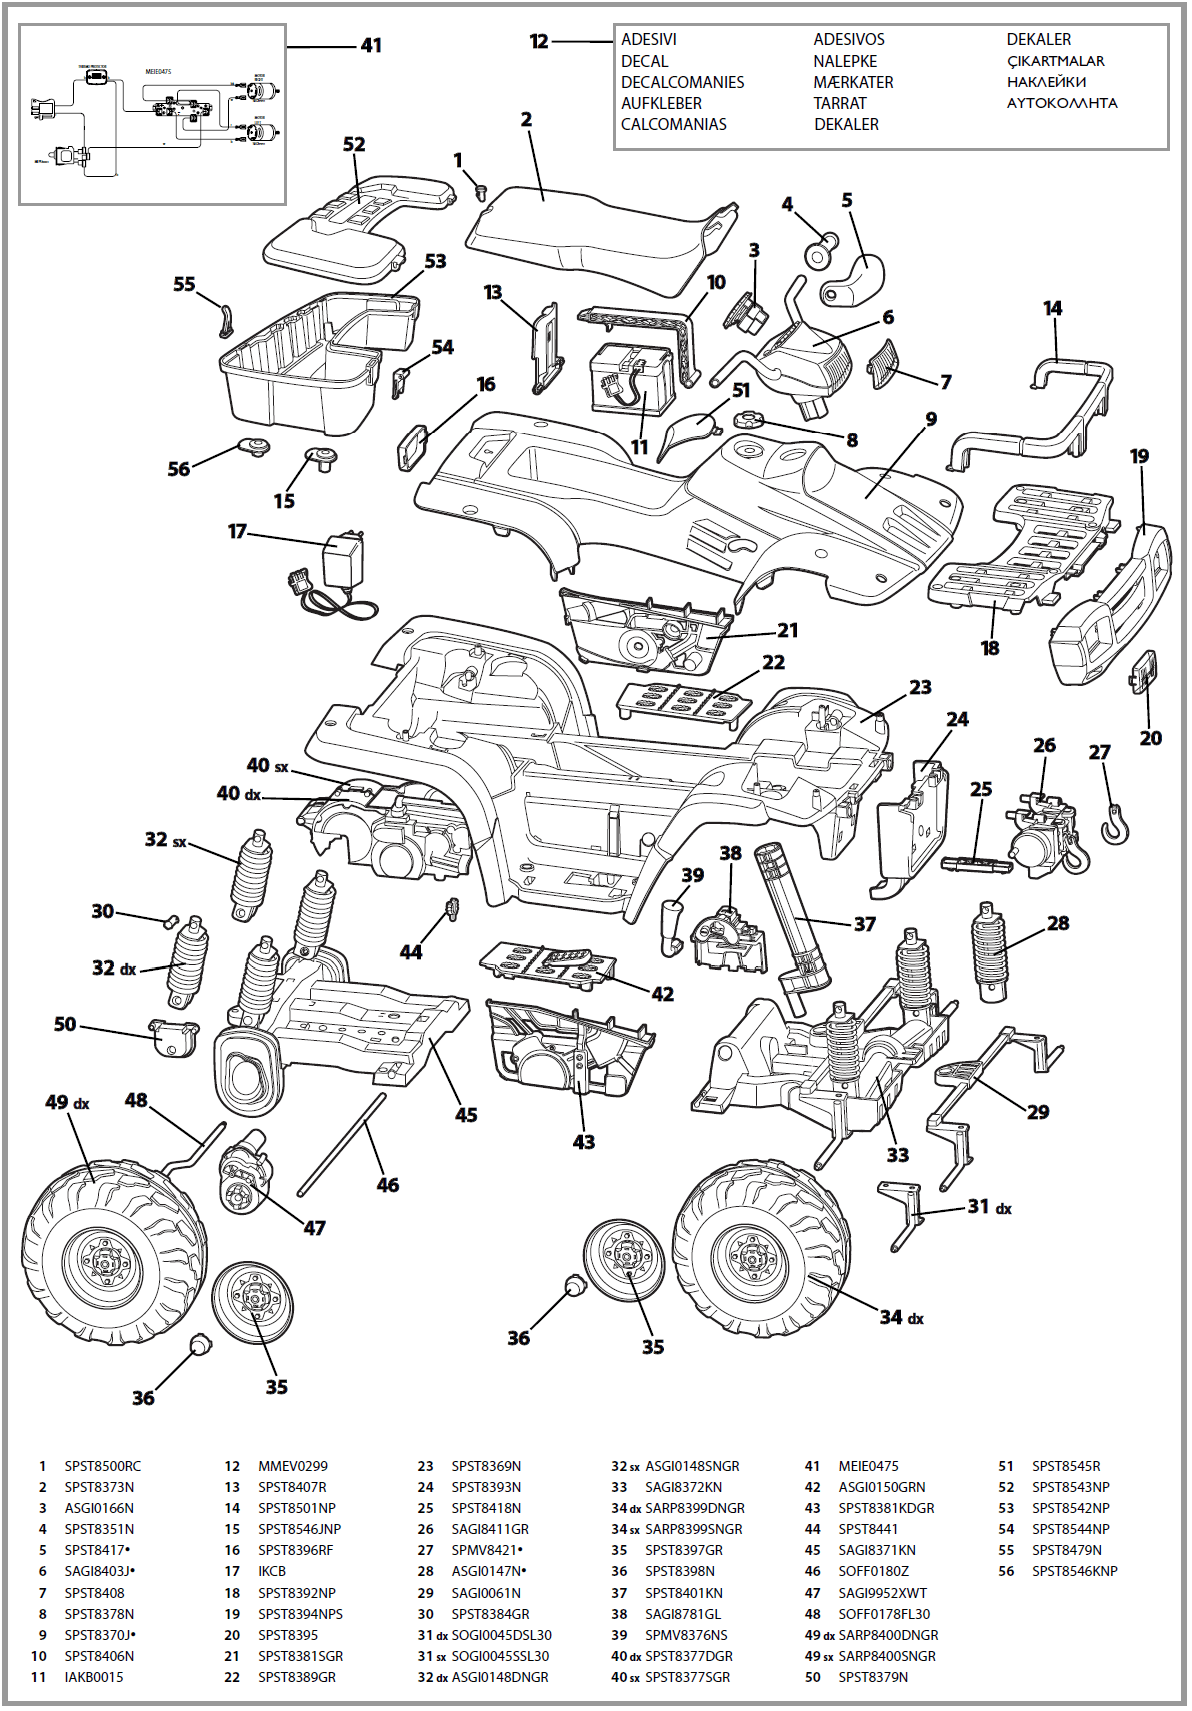 Wiring Diagram For Polaris Sportsman 500